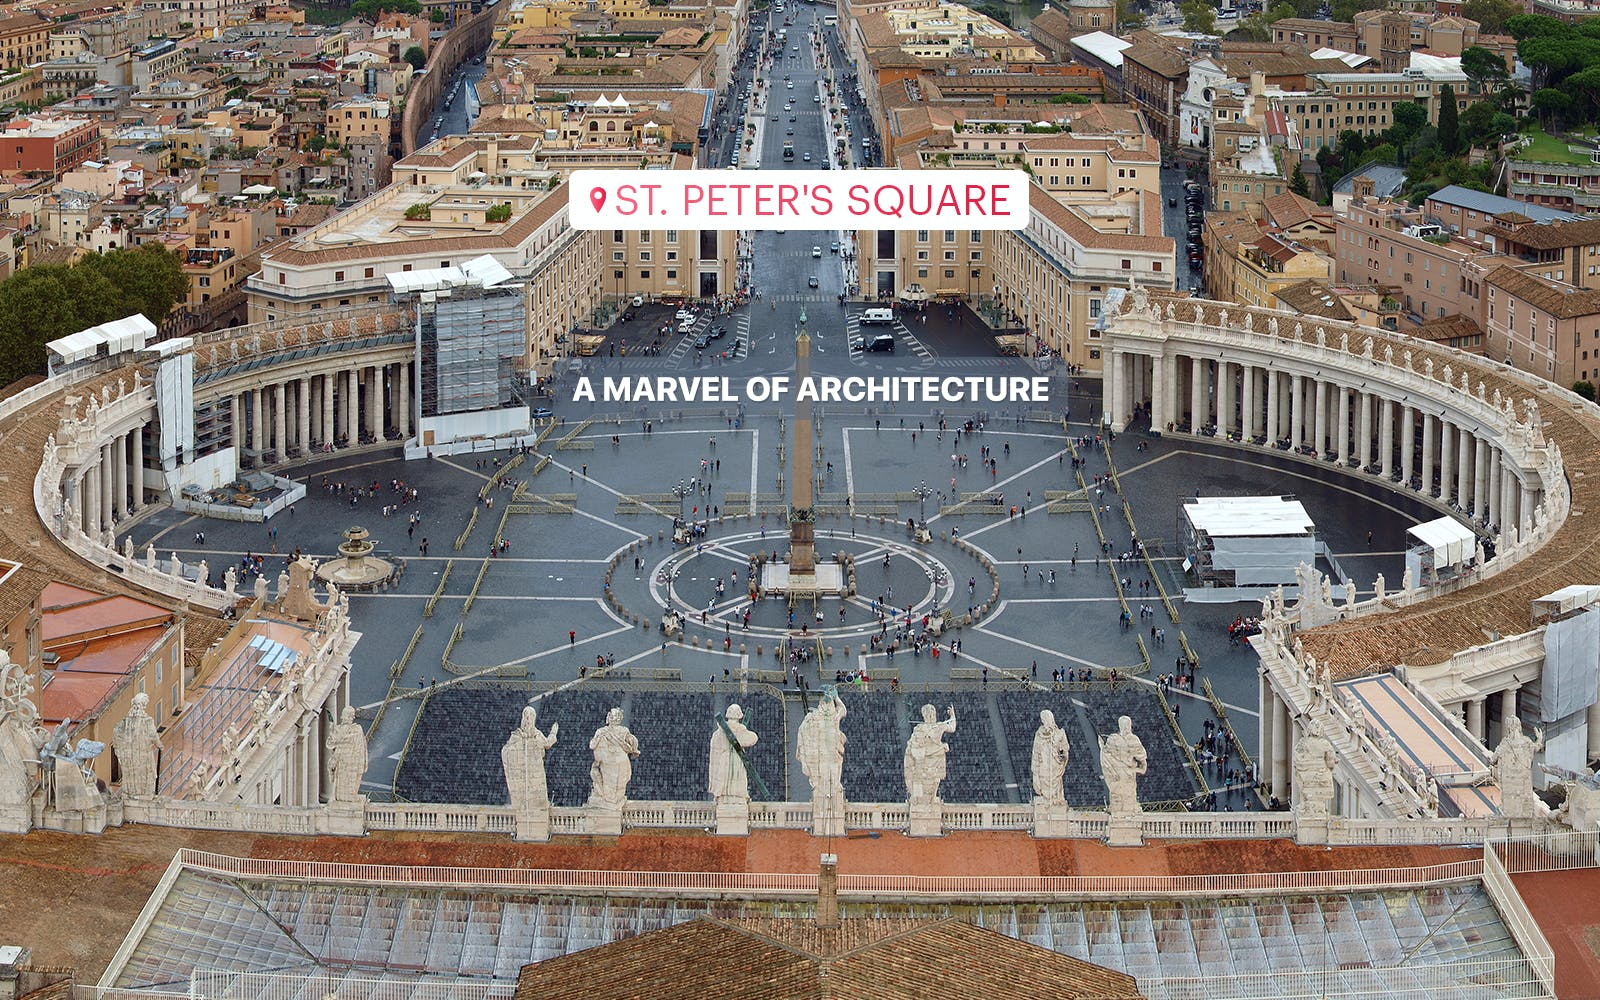 skip the line: st. peter's basilica self guided audio tour -2